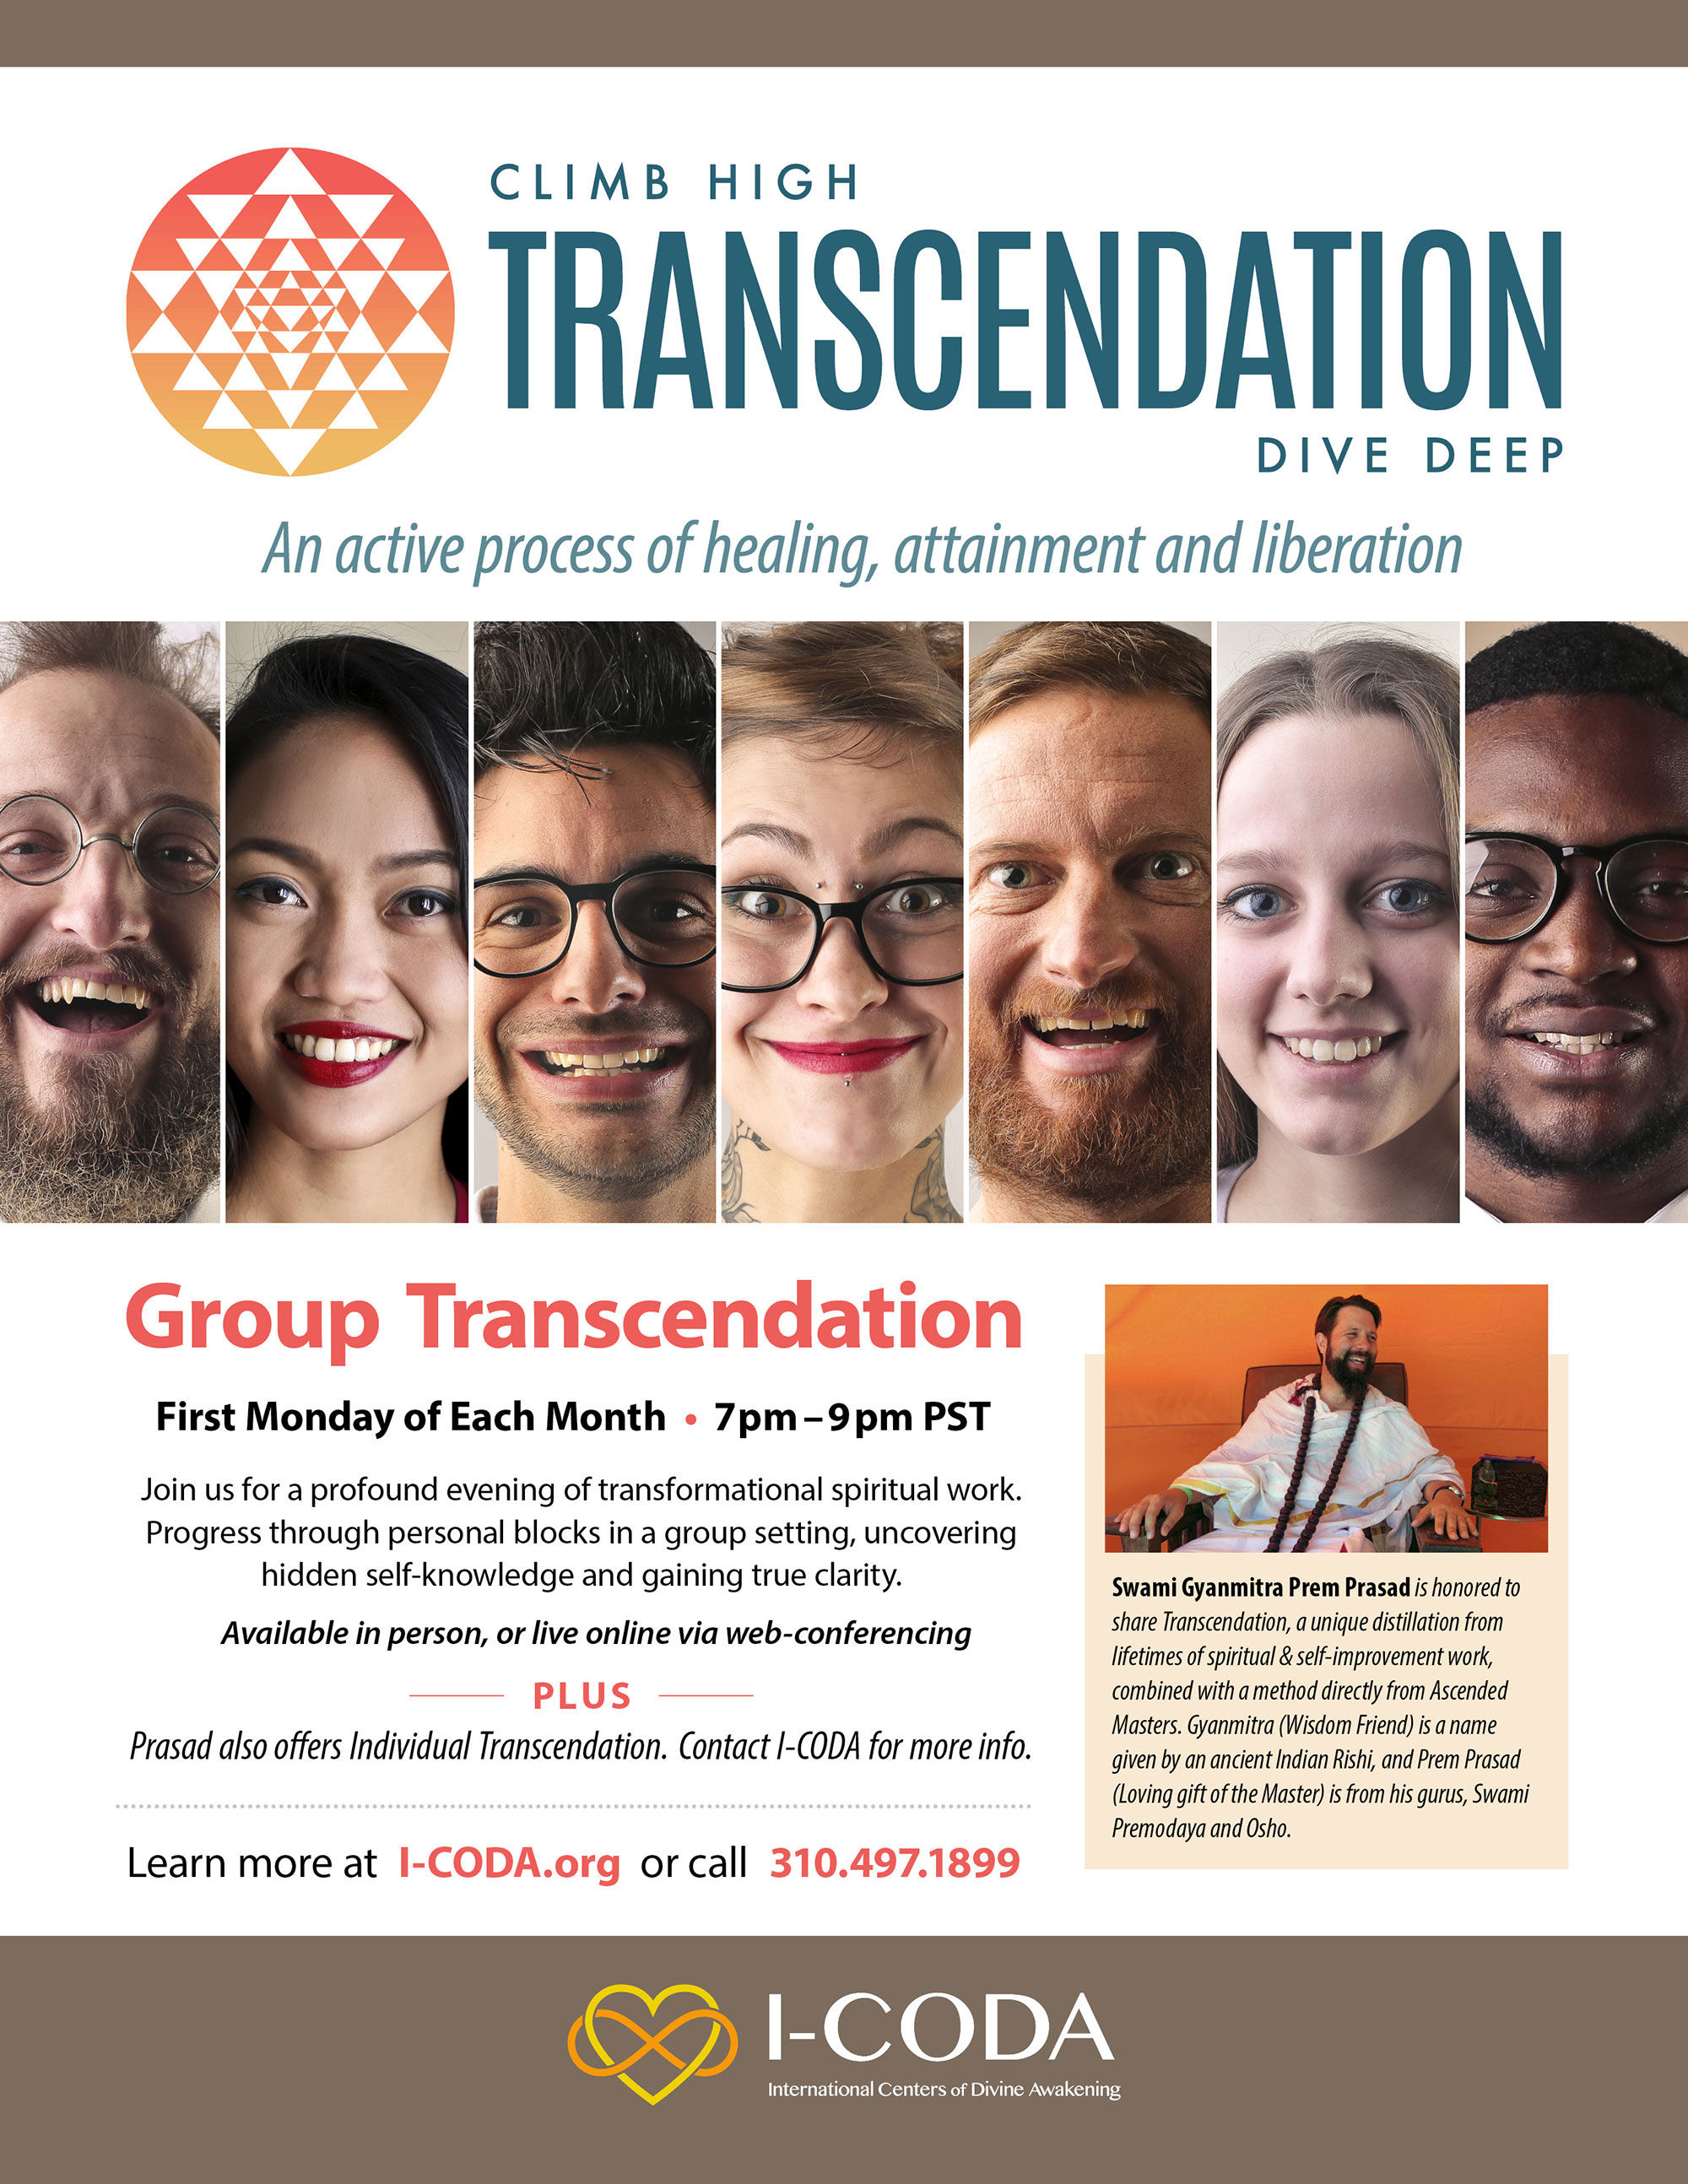 Group Transcendation Flyer 2019.jpg